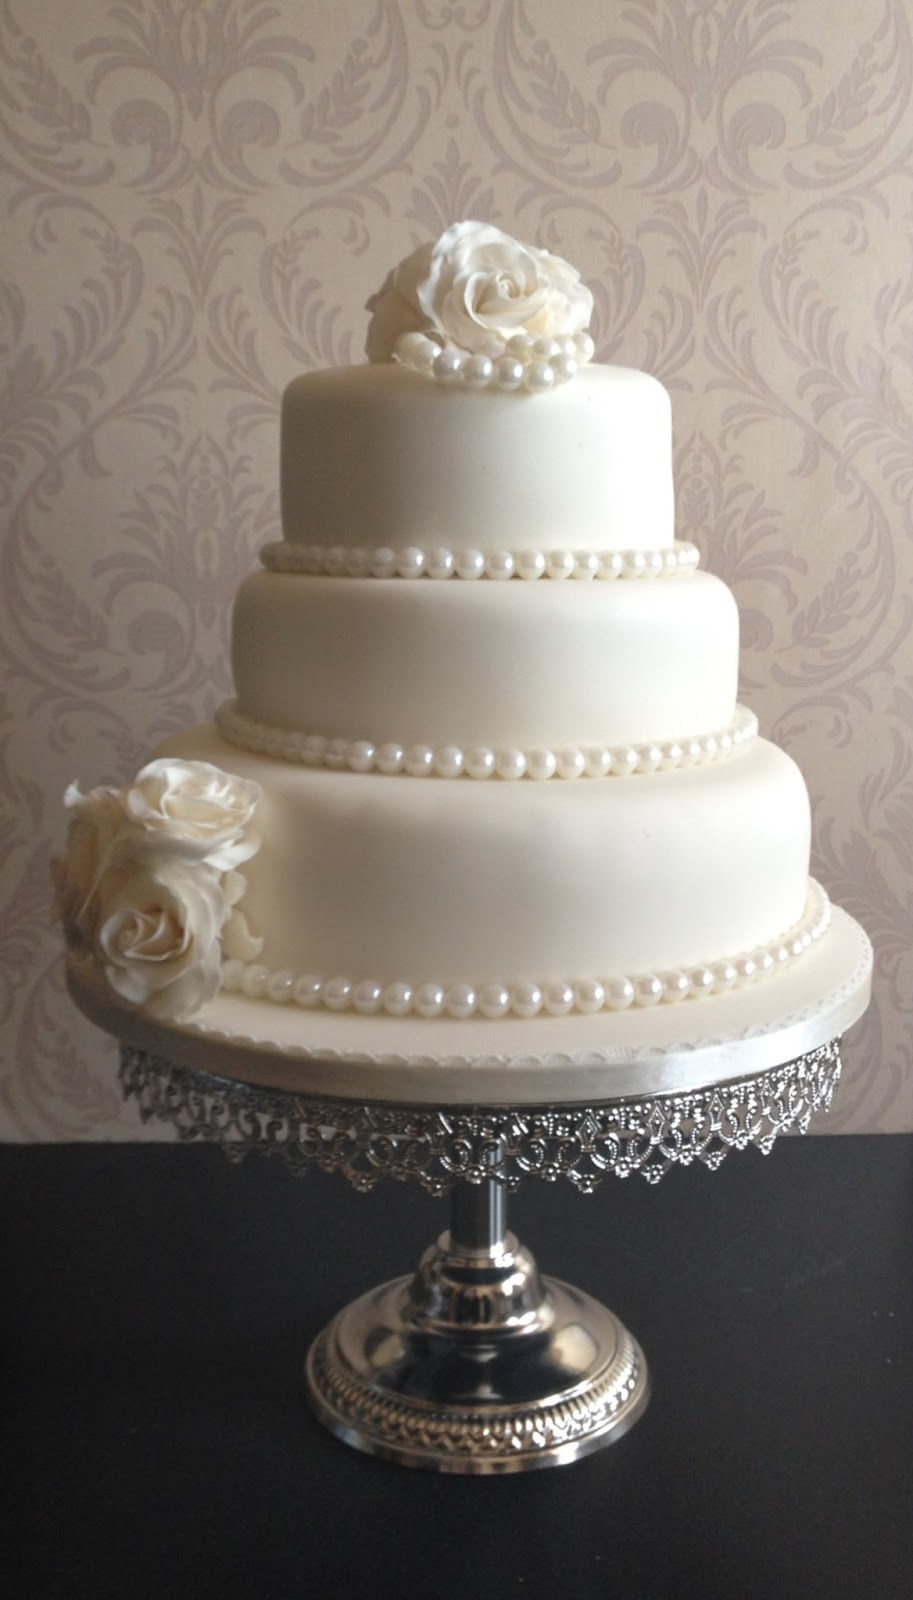 Carina's Cakes: ROSES AND PEARLS WEDDING CAKE